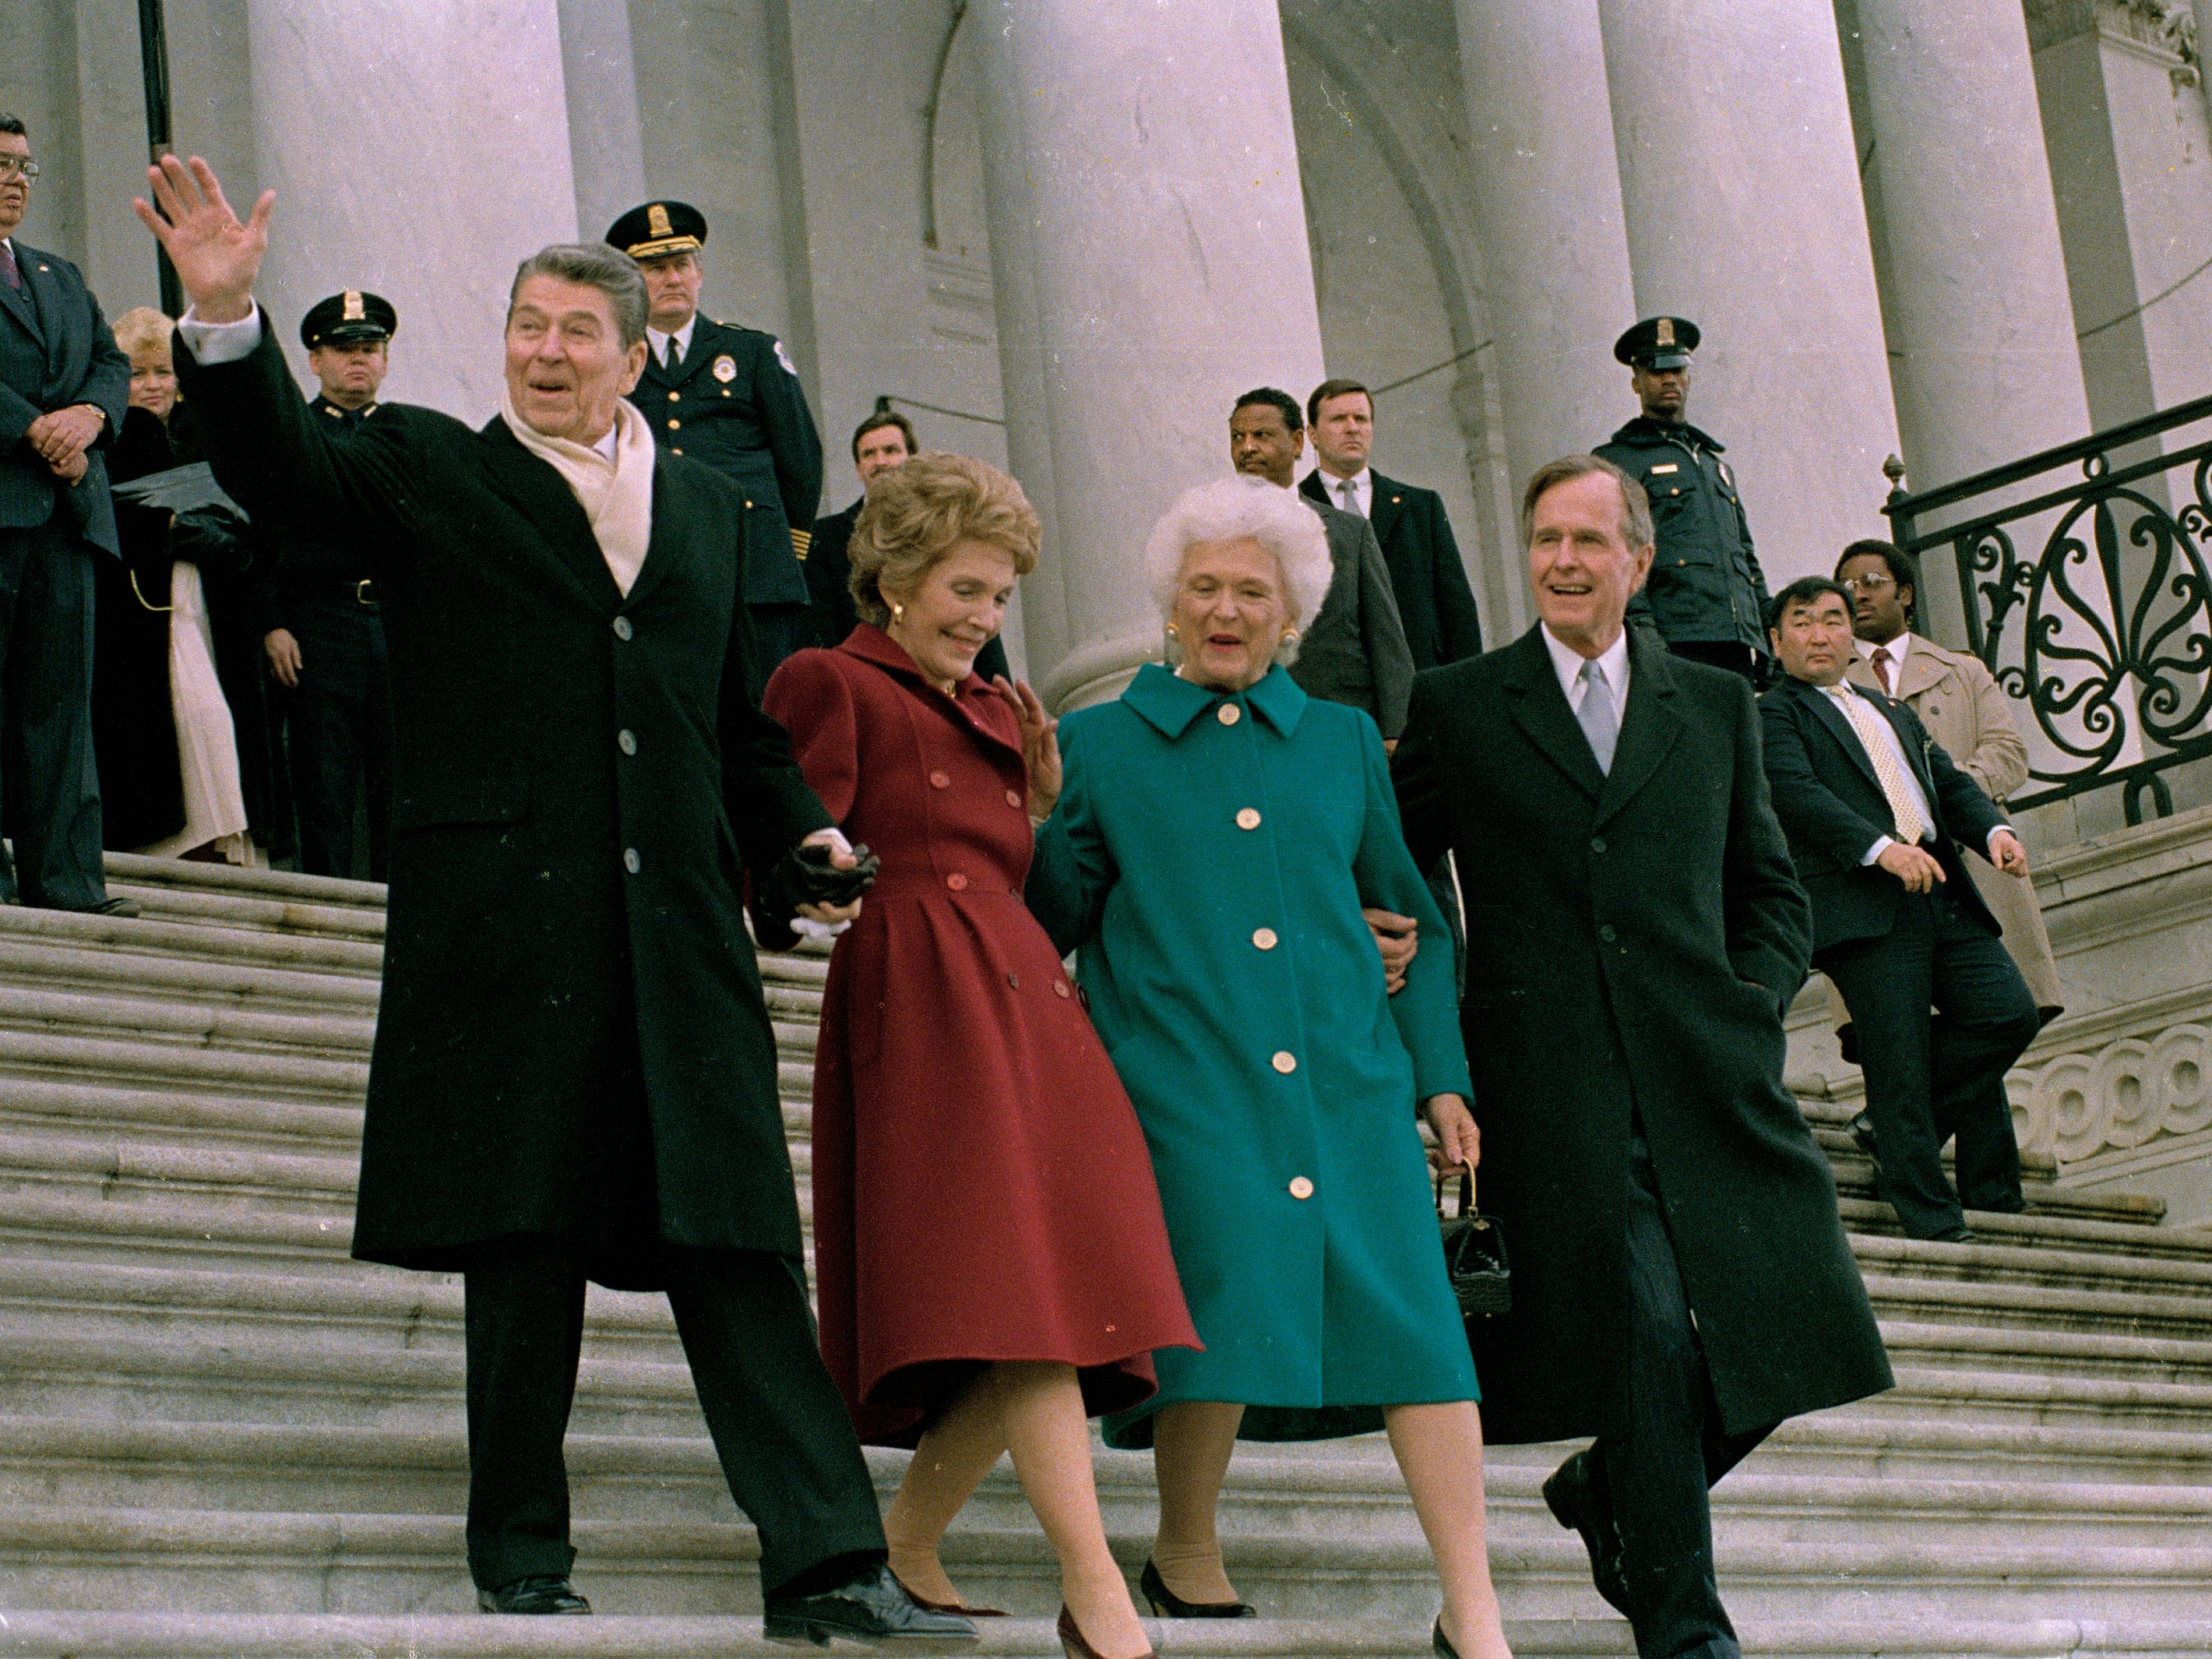 Former President Ronald Reagan, left, his wife Nancy Reagan, new first lady Barbara Bush and her husband President George Bush, right, walk down the Capitol steps after the inaugural ceremony in Washington, D.C., Friday, Jan. 20, 1989.  President Bush was sworn in as the nation's 41st president.  The Reagans are heading to an awaiting helicopter to take them to Andrews Air Force Base, Md., and onto California.  (AP Photo/J. Scott Applewhite)